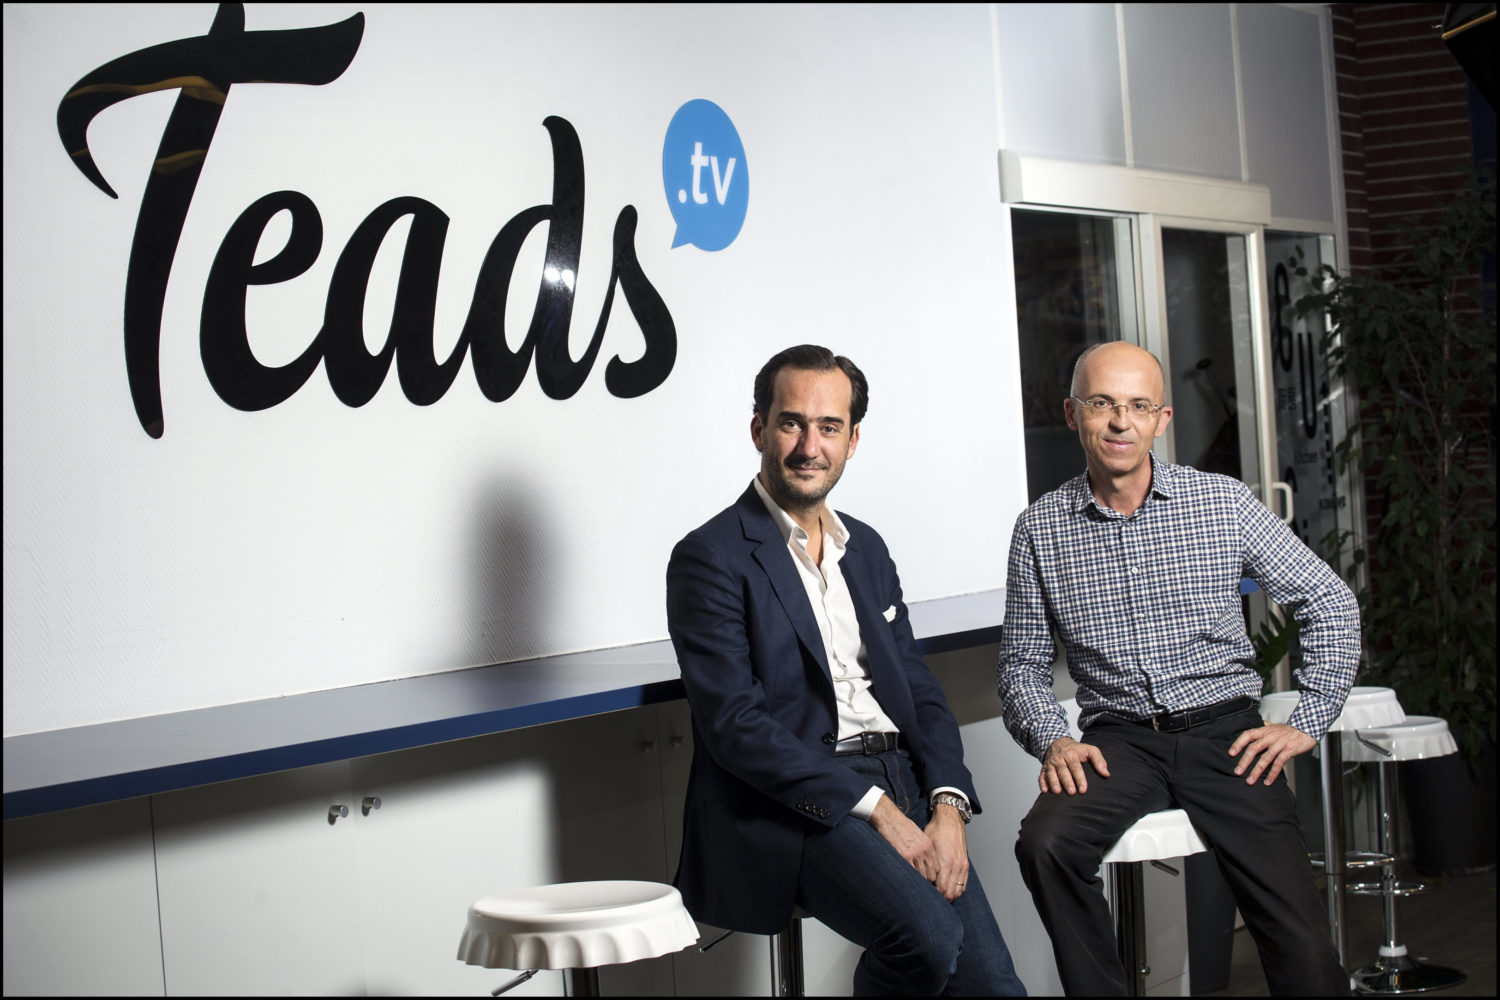 Bertrand Quesada et Pierre Chappaz, co fondateurs et Co PDG de Teads, plateforme de publicite video en ligne *** Local Caption *** Teads a leve des fonds notamment aupres de BPI France